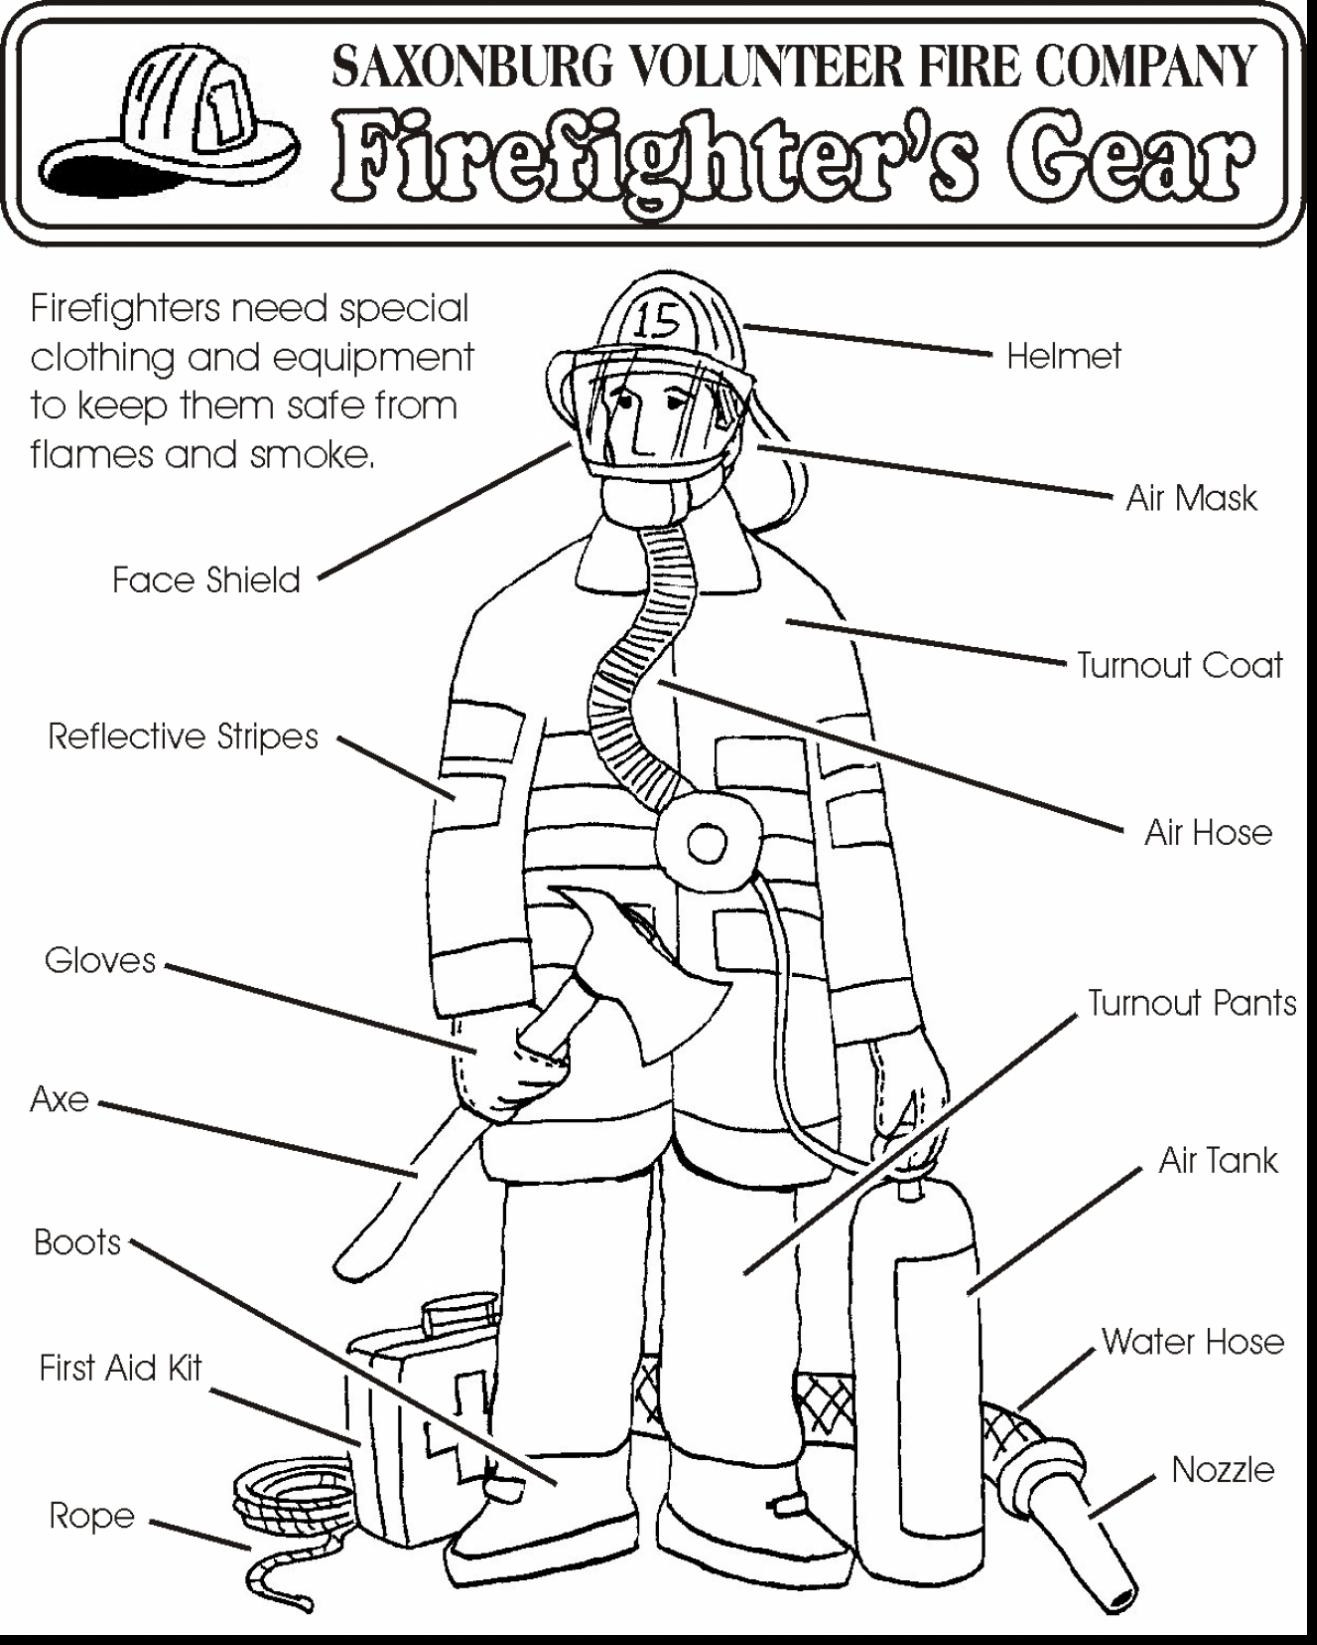 Free Printable Fire Safety Worksheets Fire Prevention Worksheets for Preschool